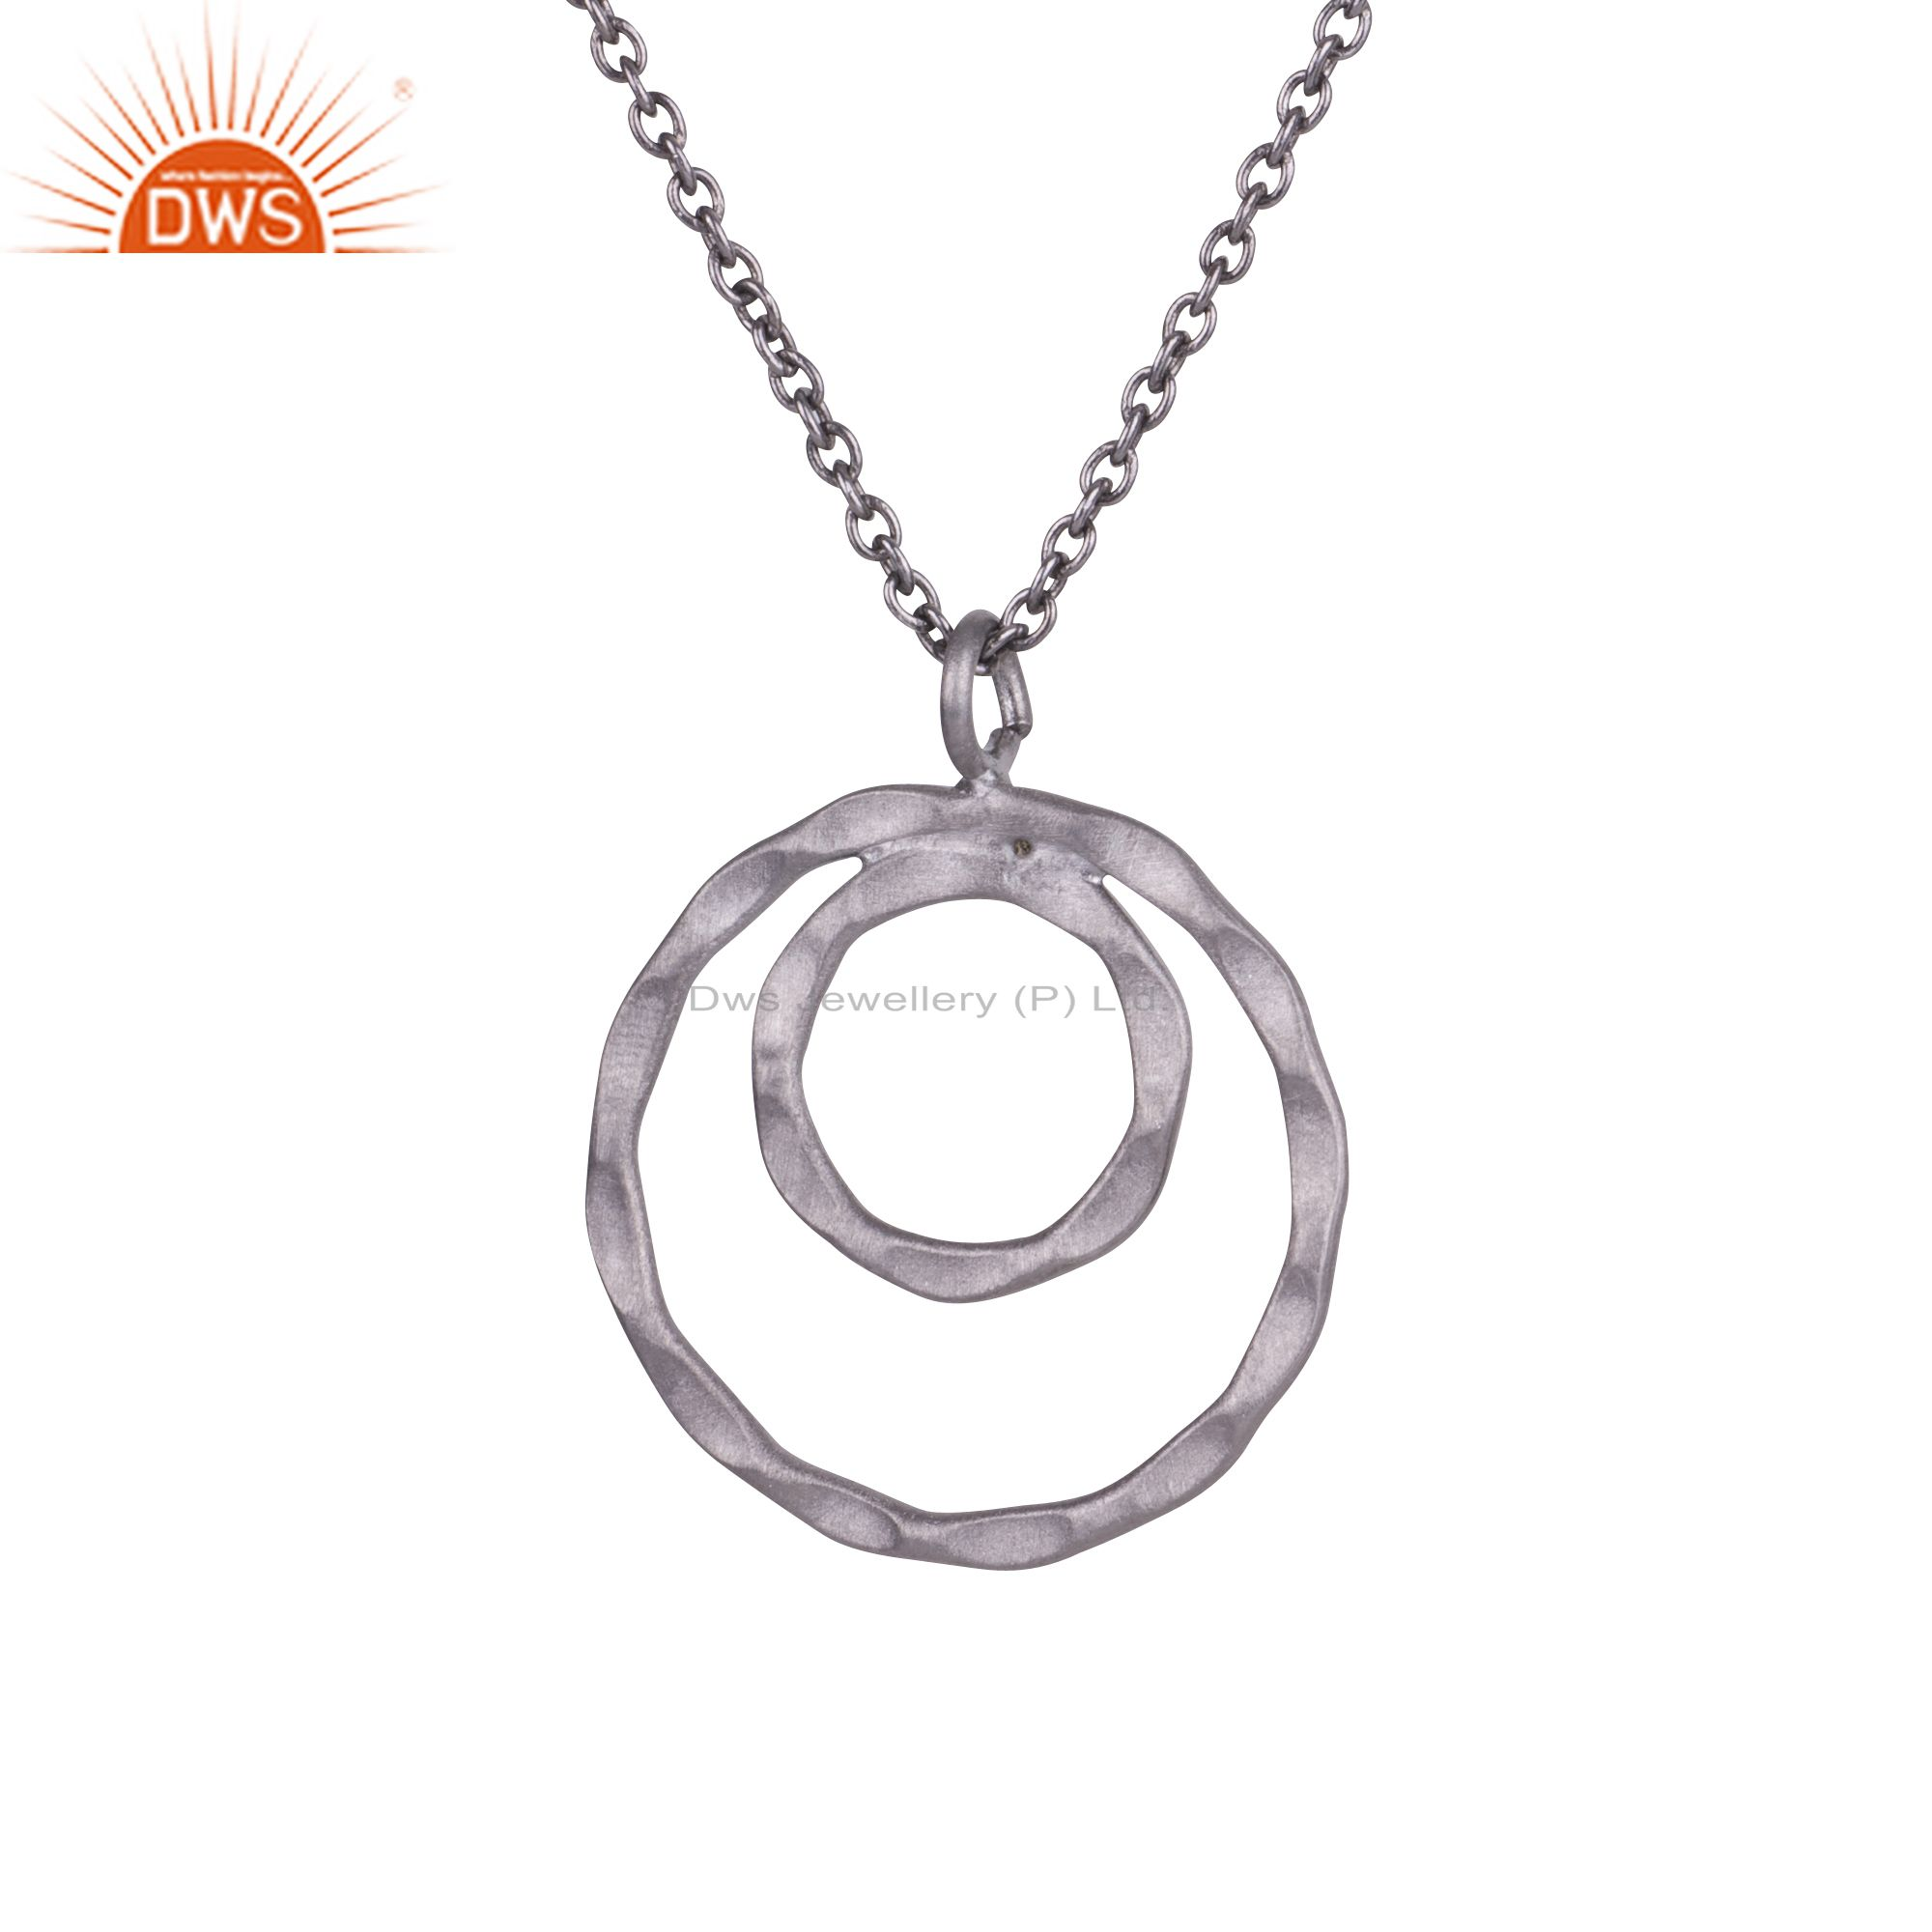 925 sterling silver oxidized hammered multi circle pendant with chain necklace